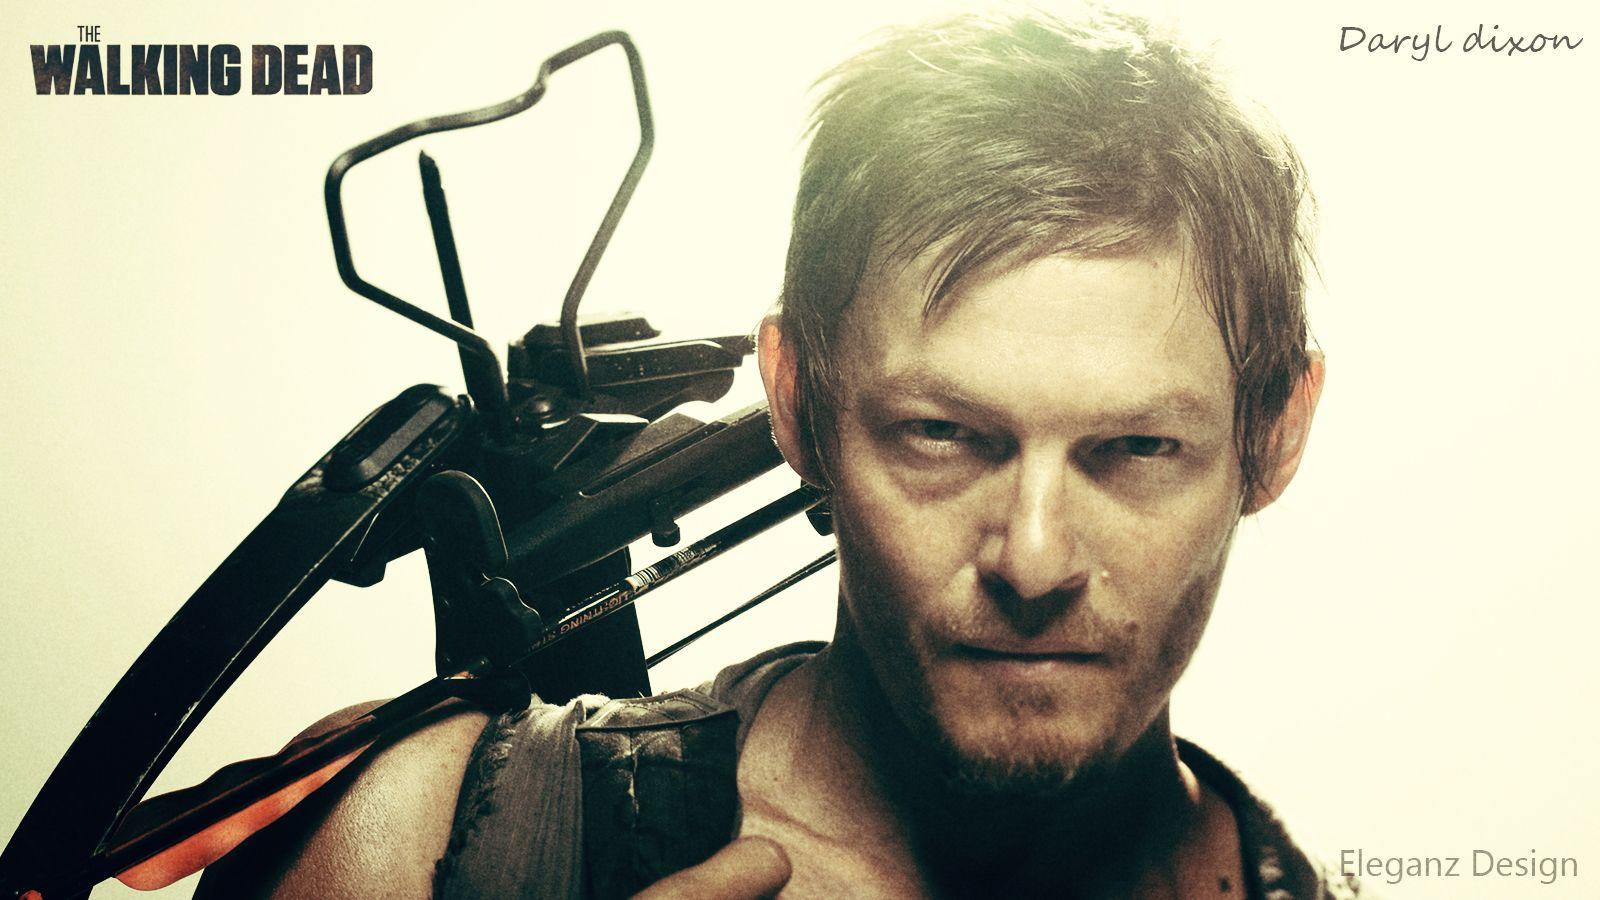 Daryl Dixon The Walking Dead Wallpapers Wallpaper Cave